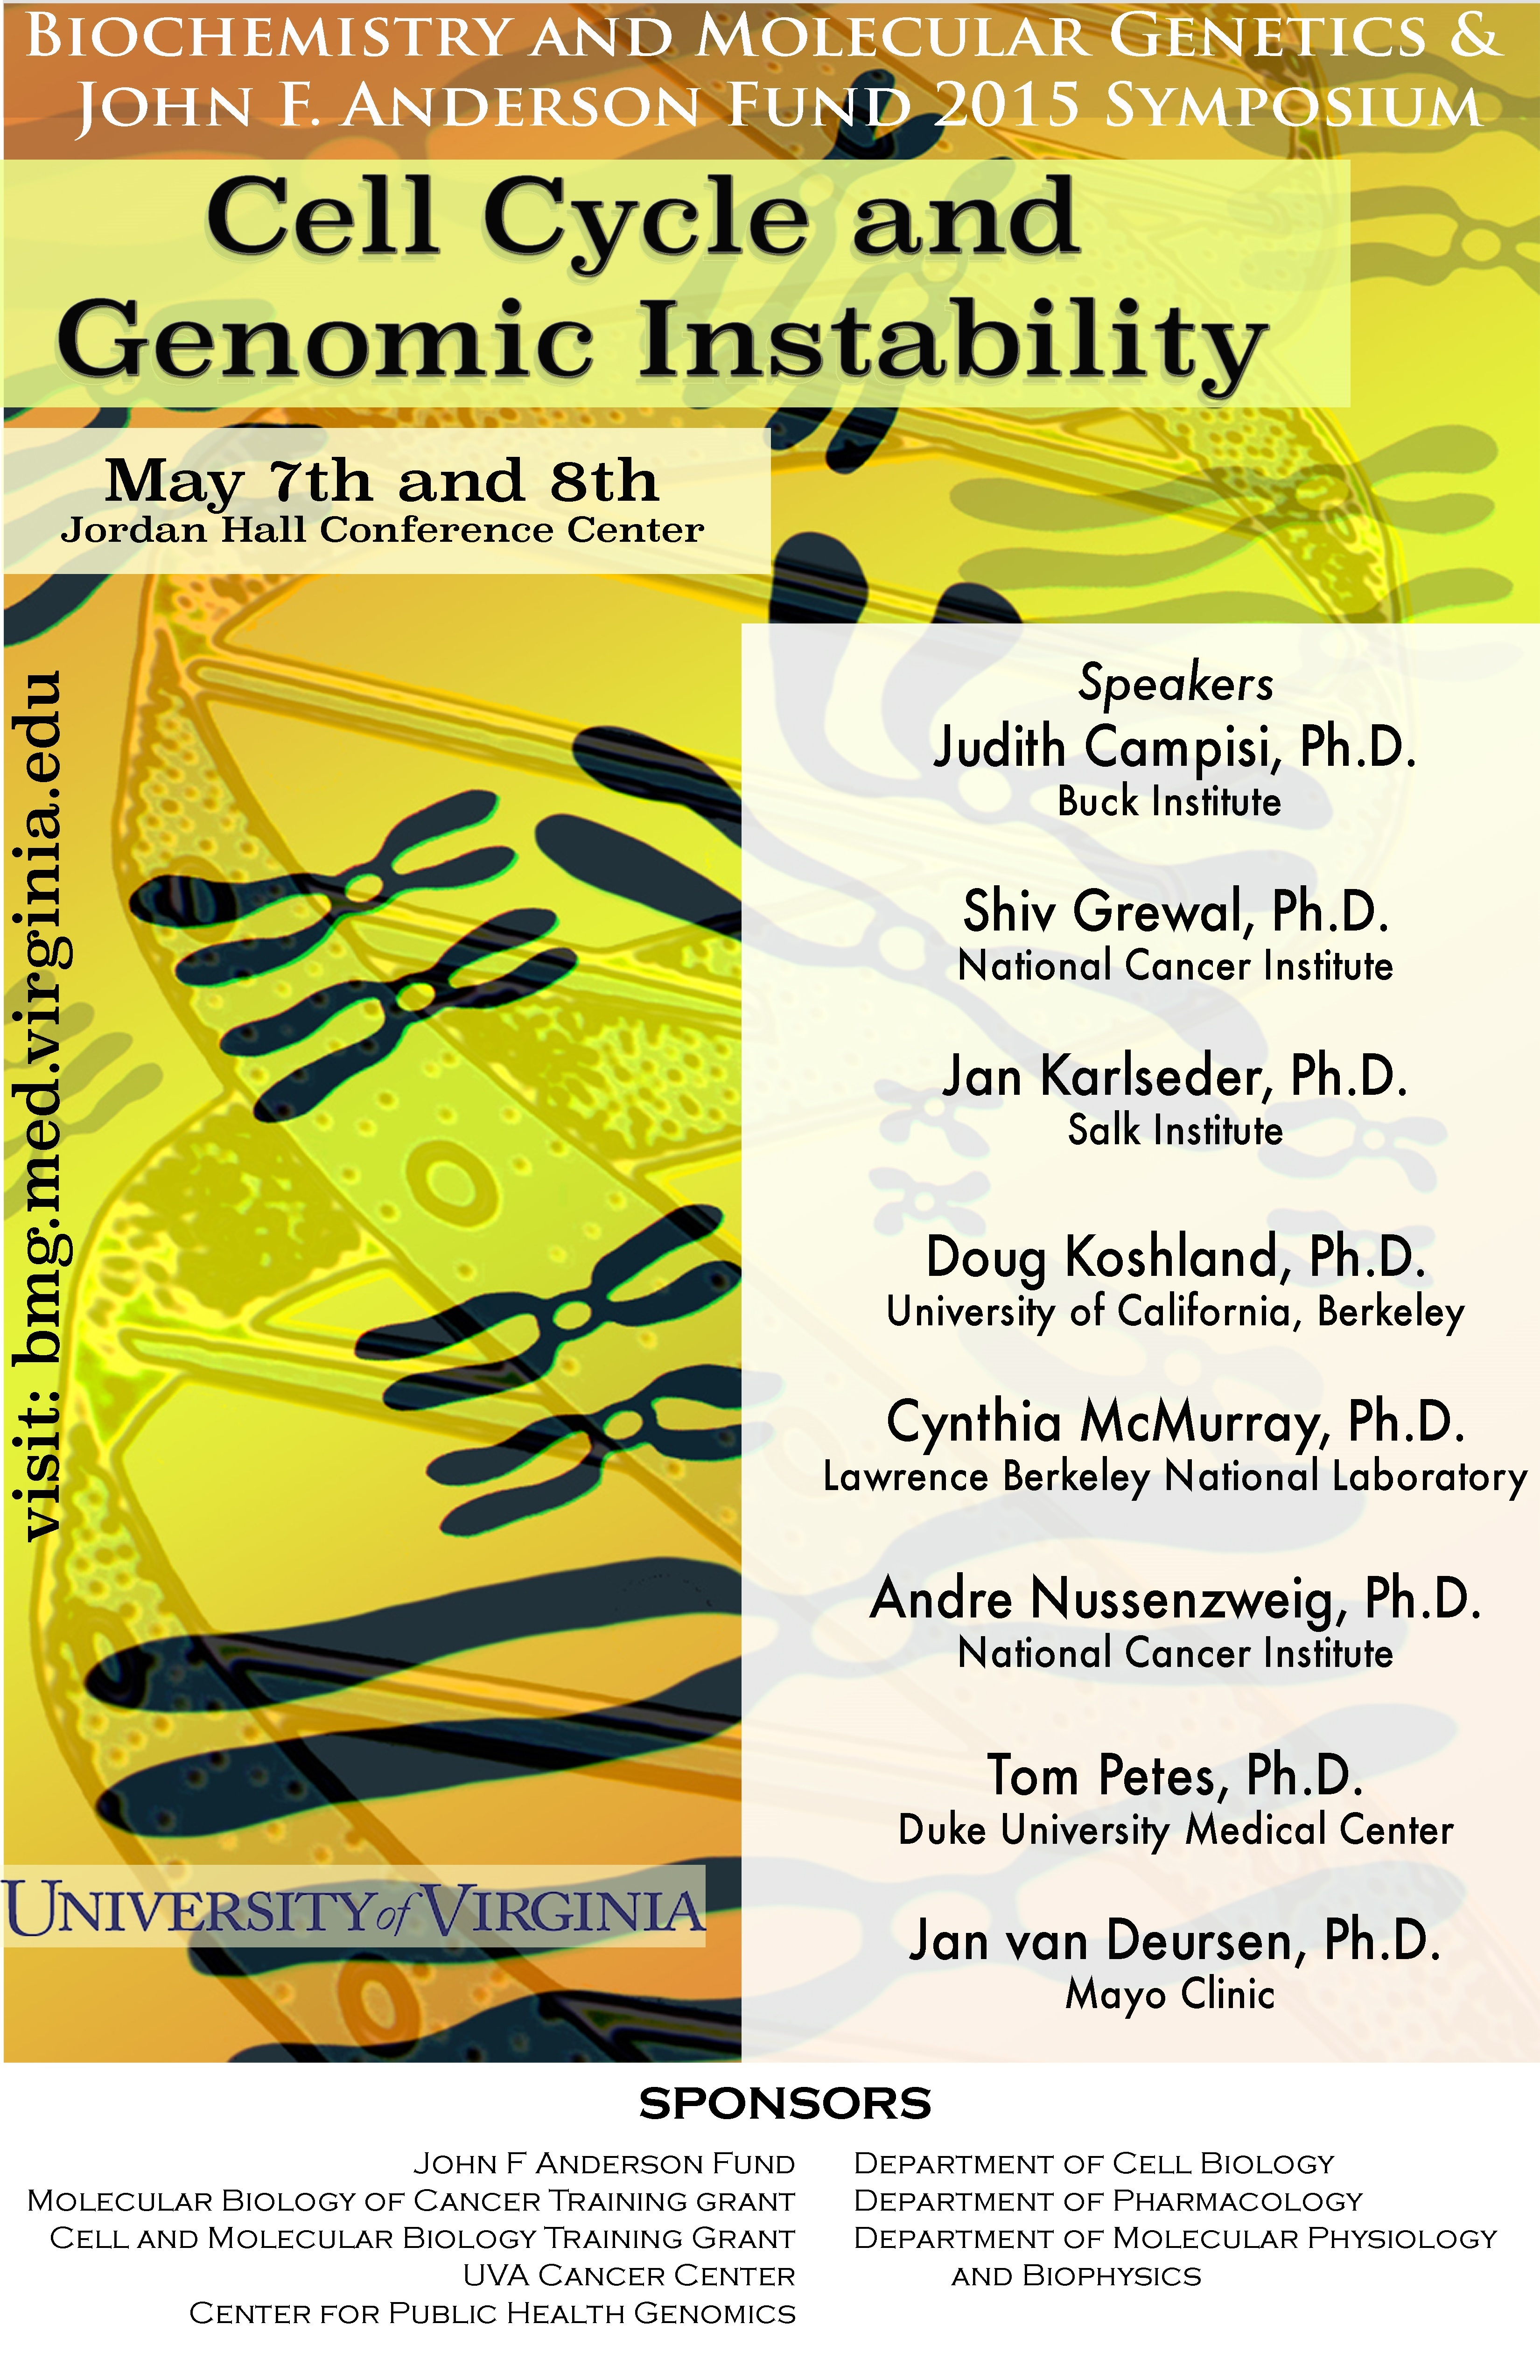 BMB Symposium 2015 - Biochemistry and Molecular Genetics